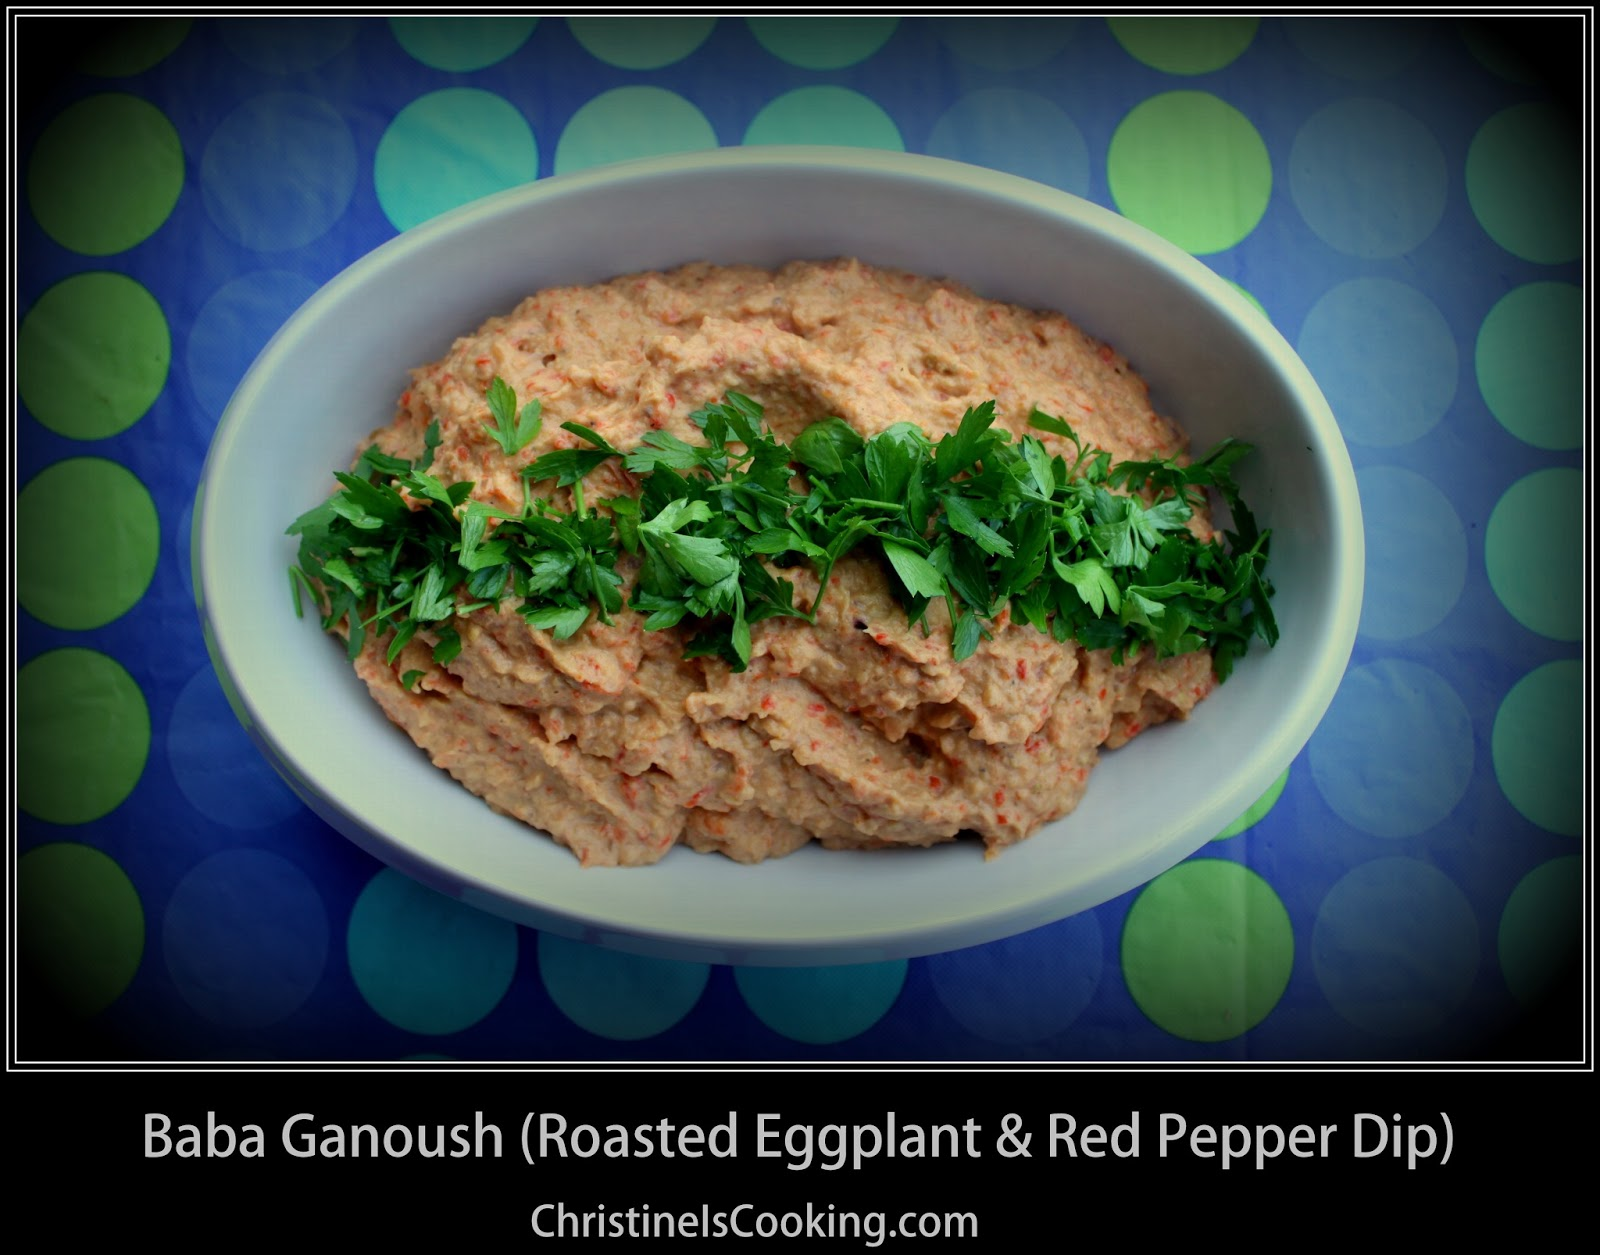 ... .com: Baba Ganoush: Roasted Red Pepper and Eggplant Dip